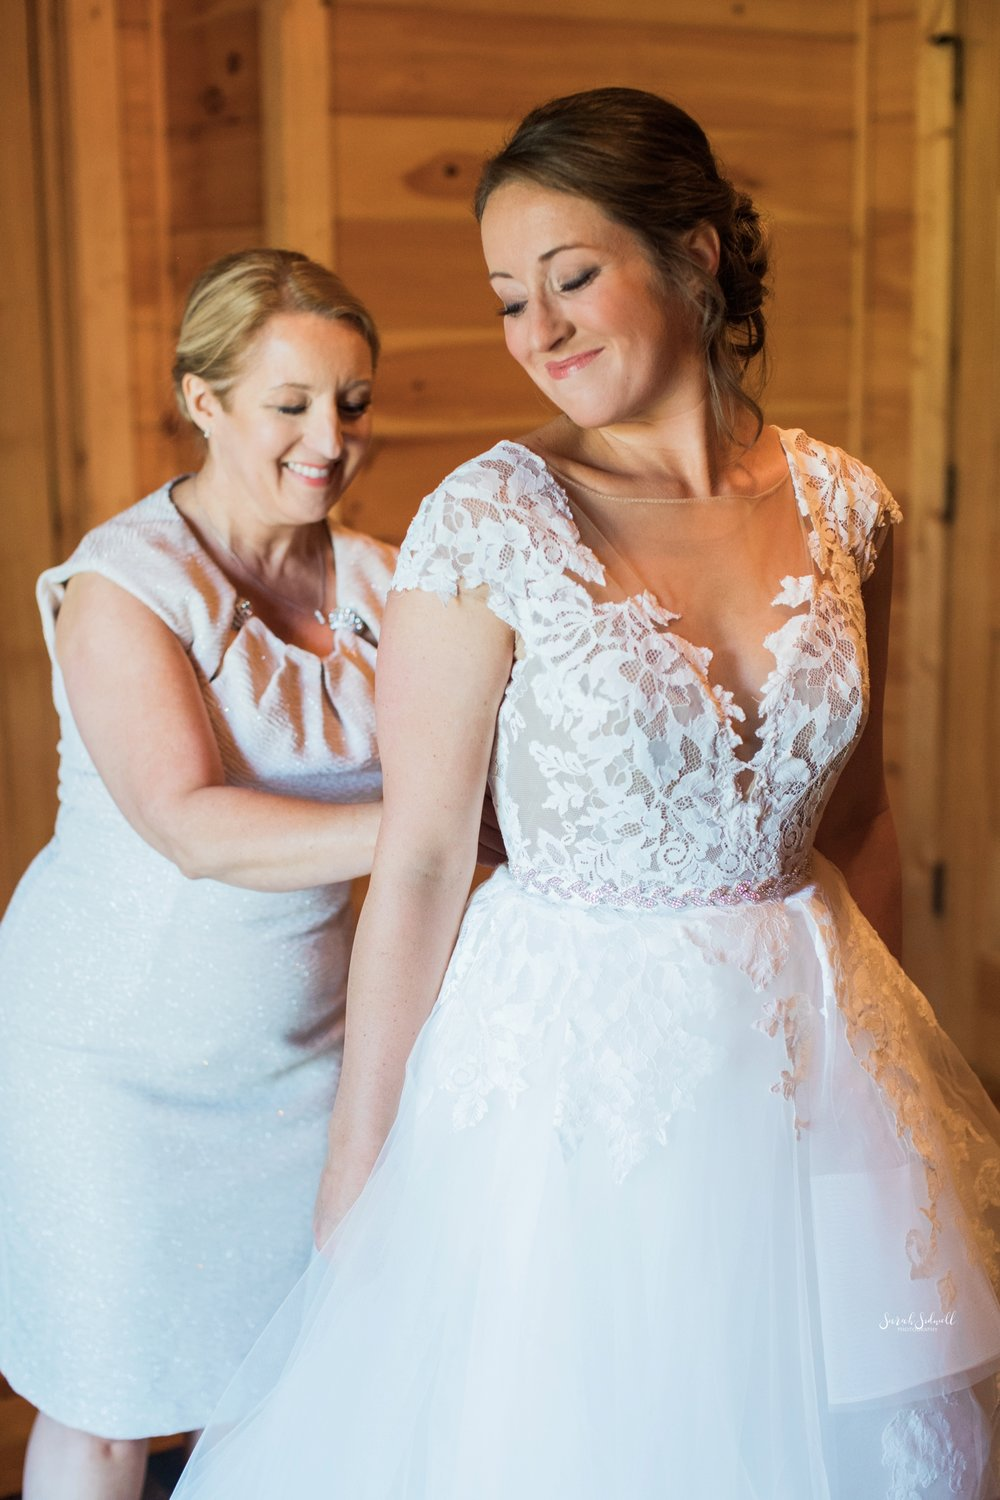 A bride gets help fastening her dress.